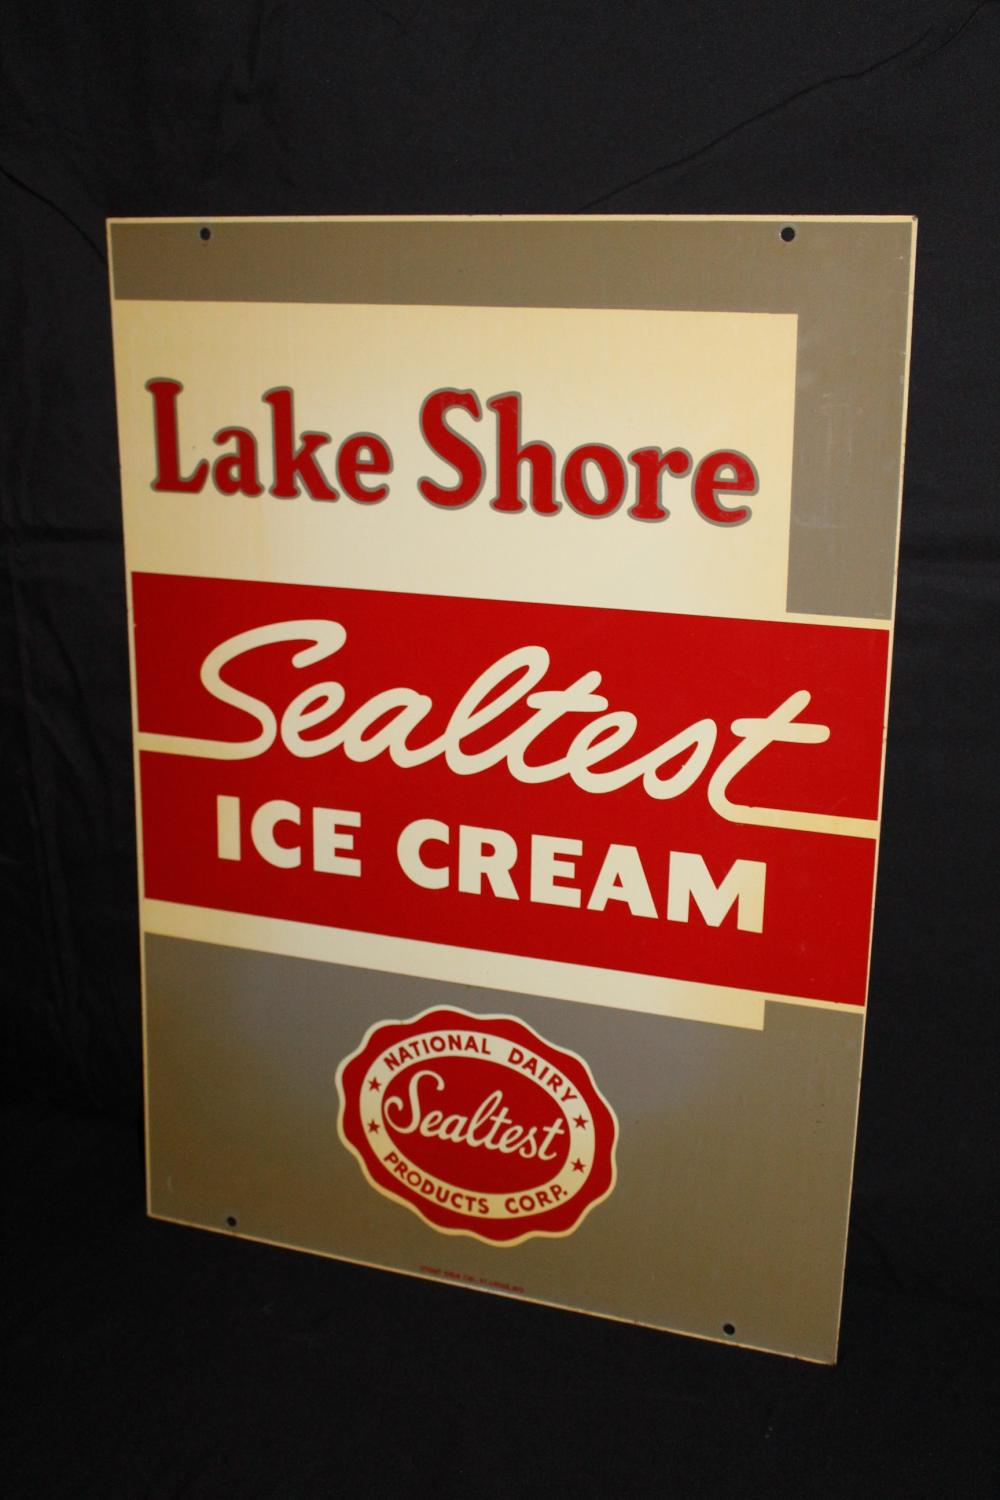 LAKE SHORE SEAL TEST ICE CREAM SIGN